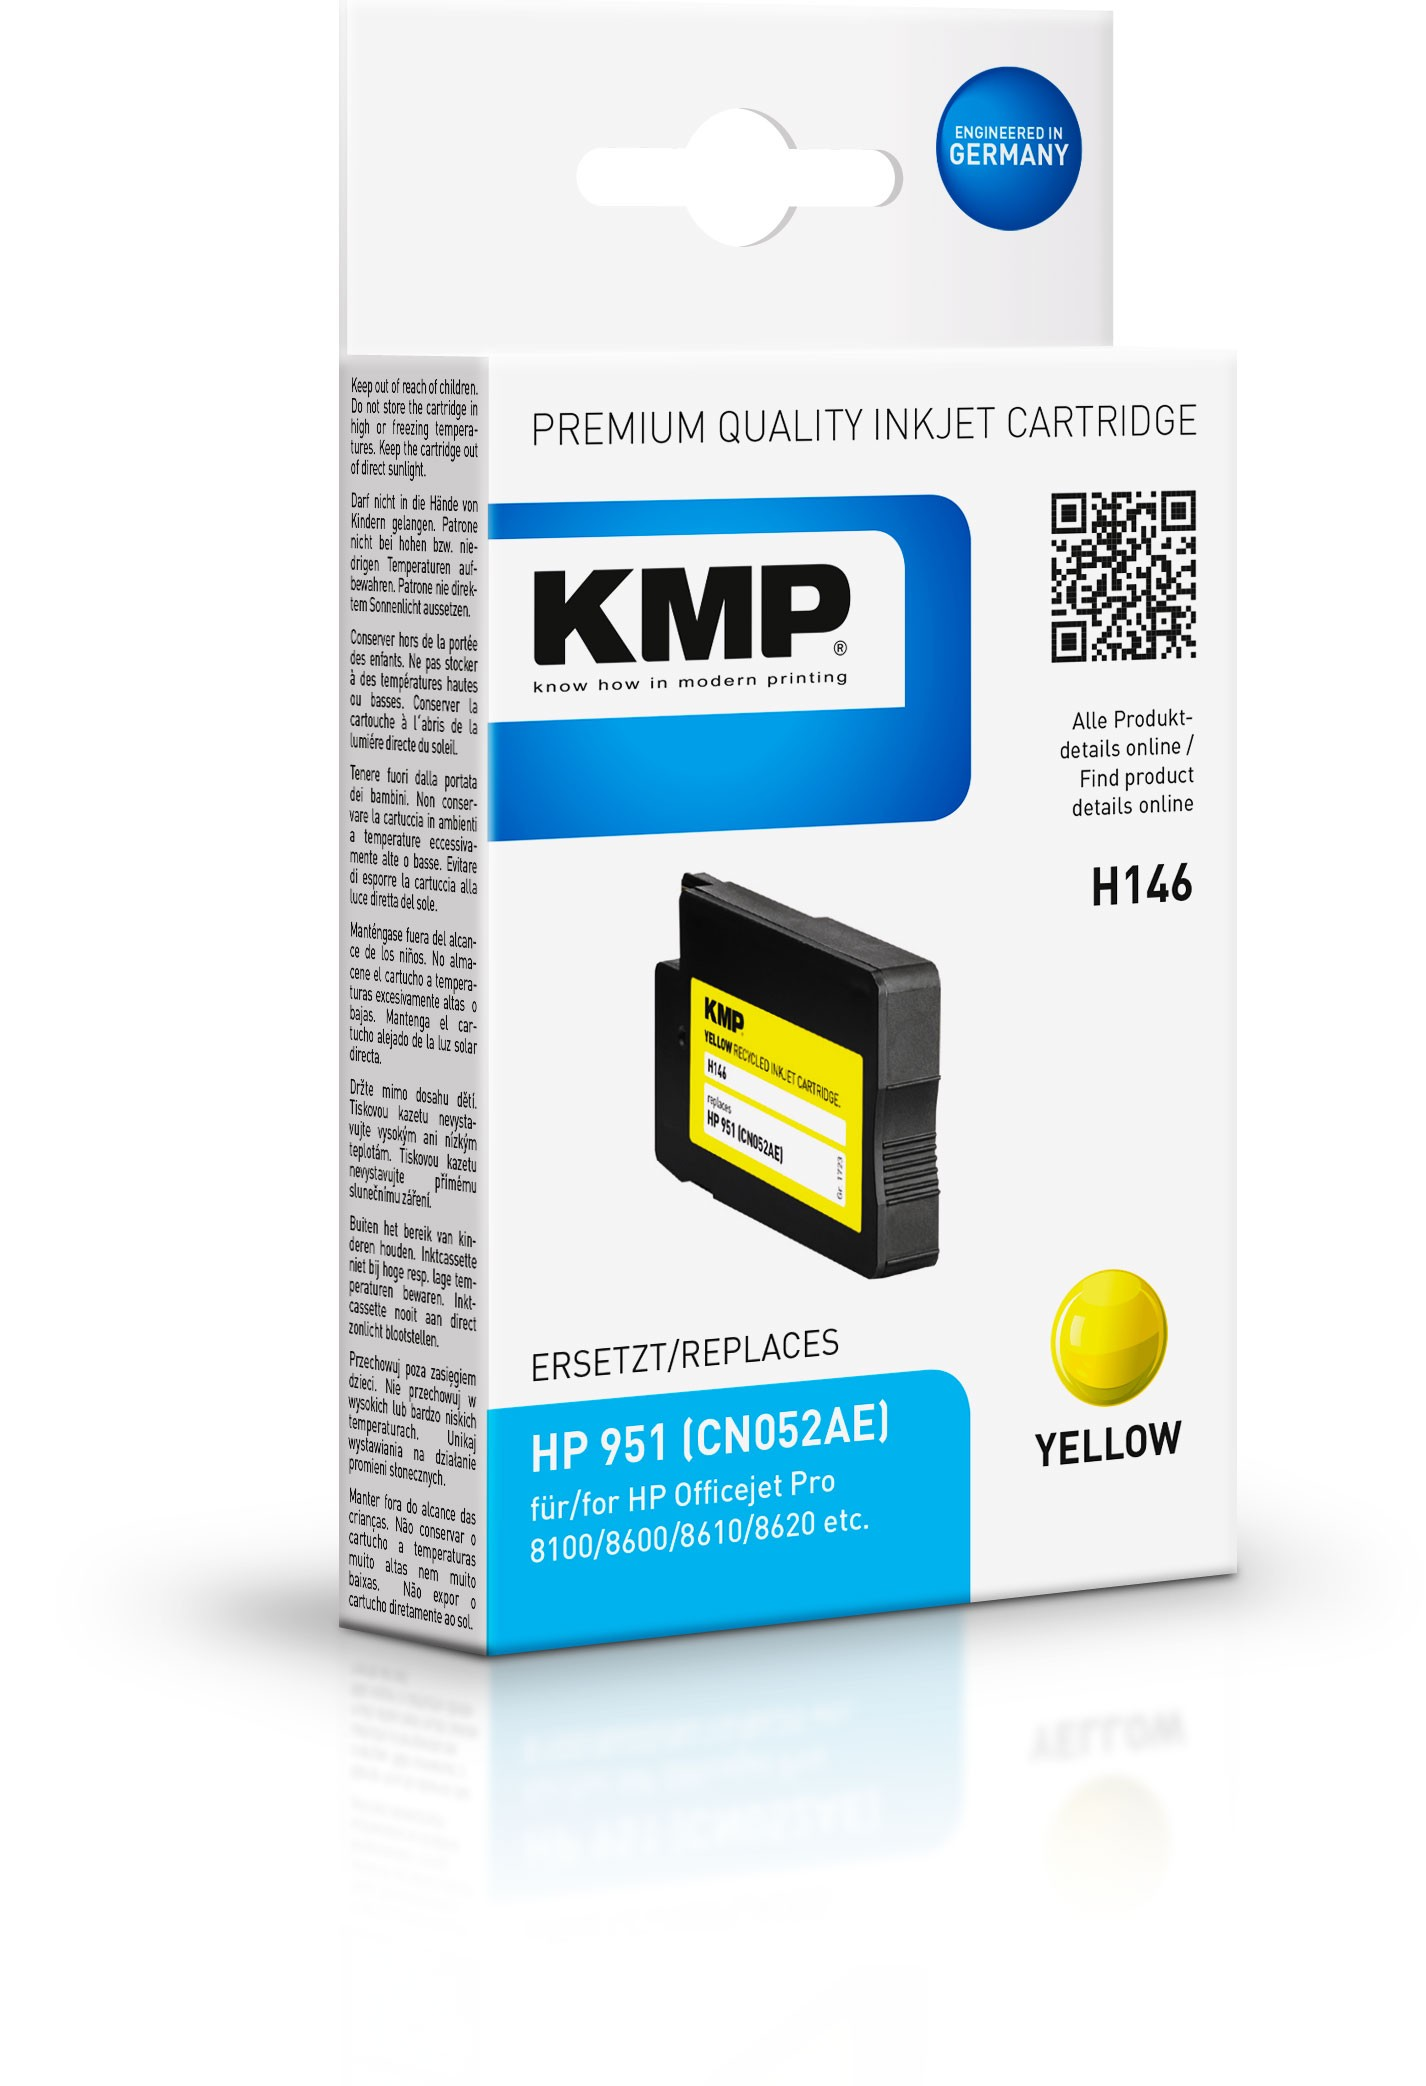 KMP Patrone H146 für CN052AE HP 951 Officejet Pro 8100 etc. yellow pig.